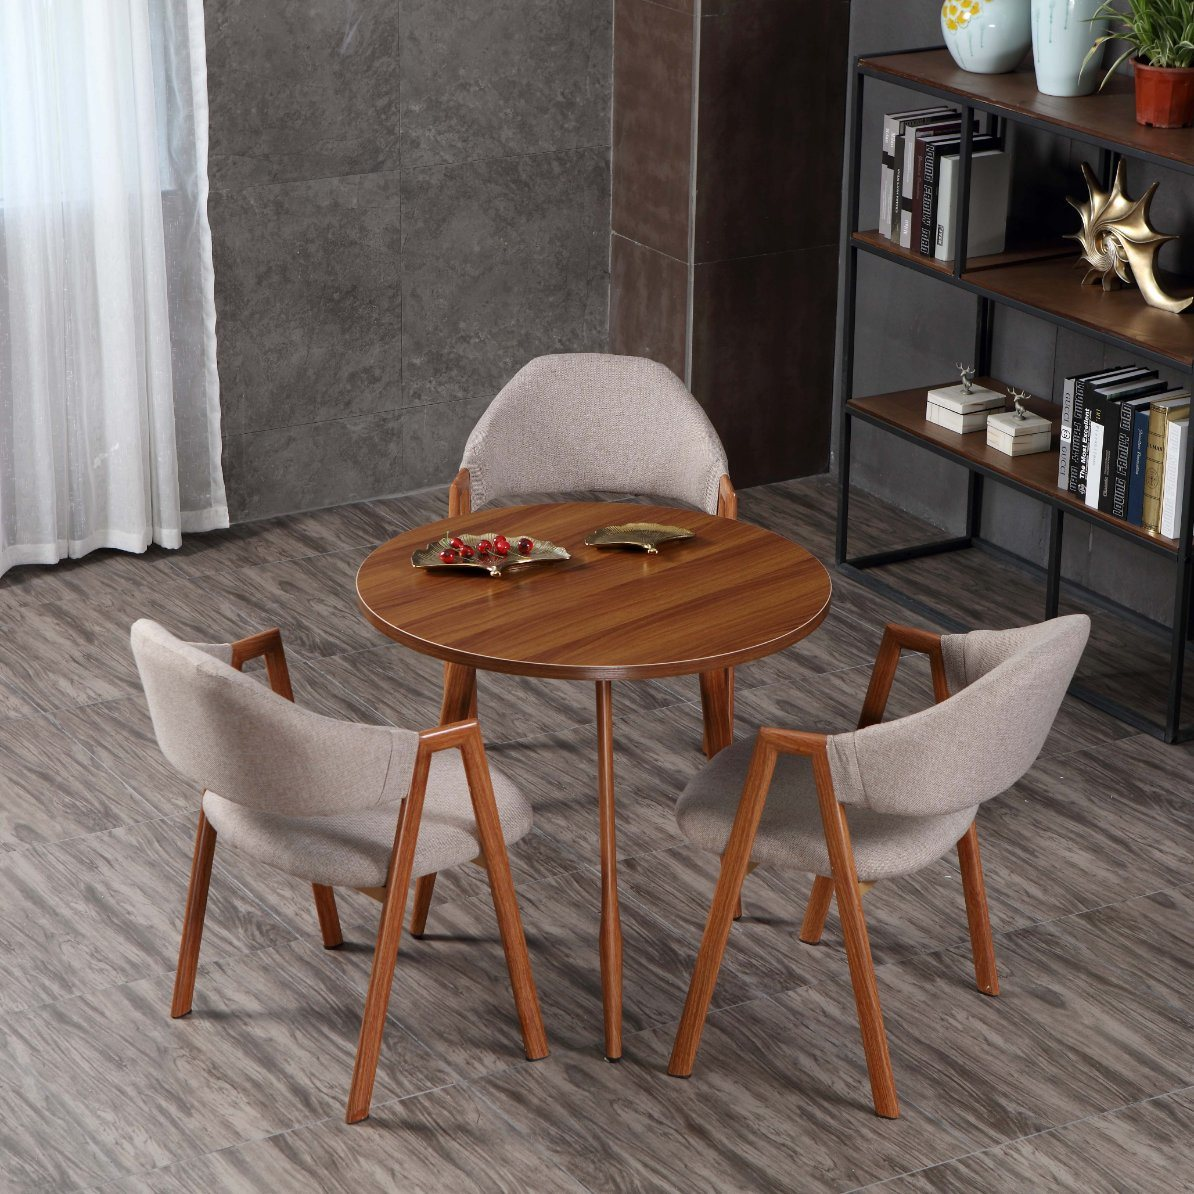 9 New Design Dining Room Furniture Made in China Morden Dining ...